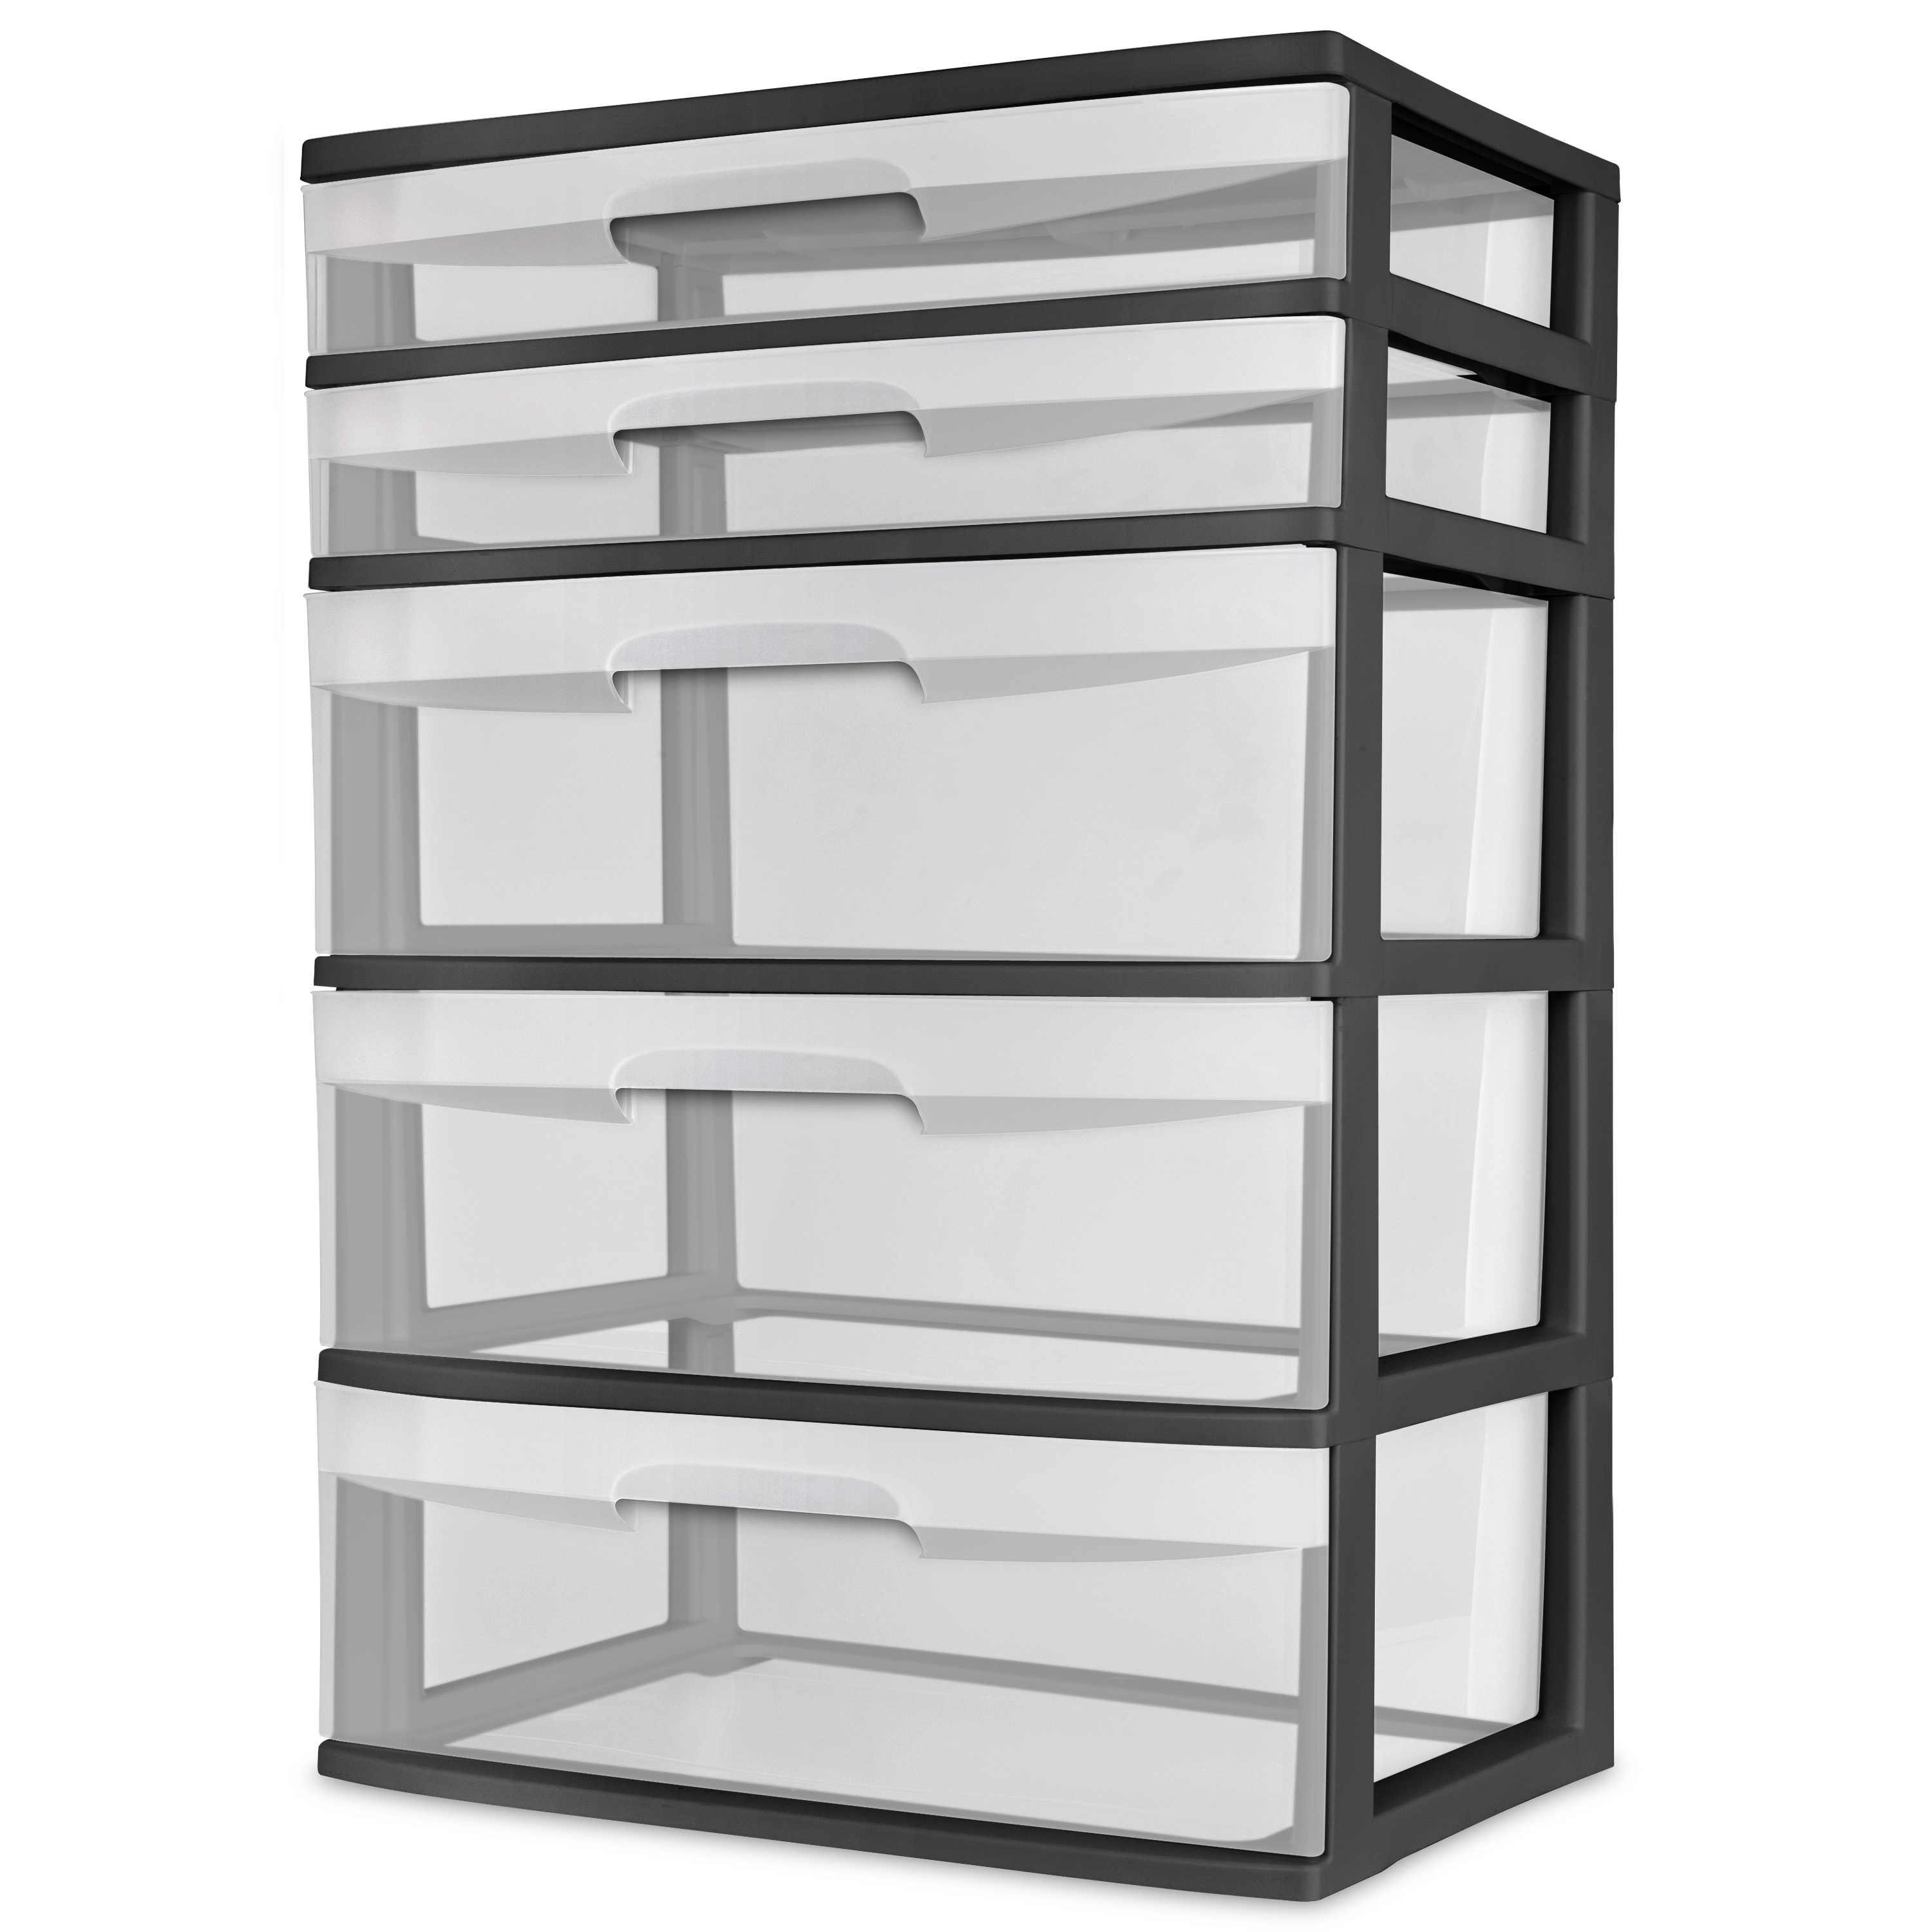 Sterilite 5 Drawer Wide Tower, Black